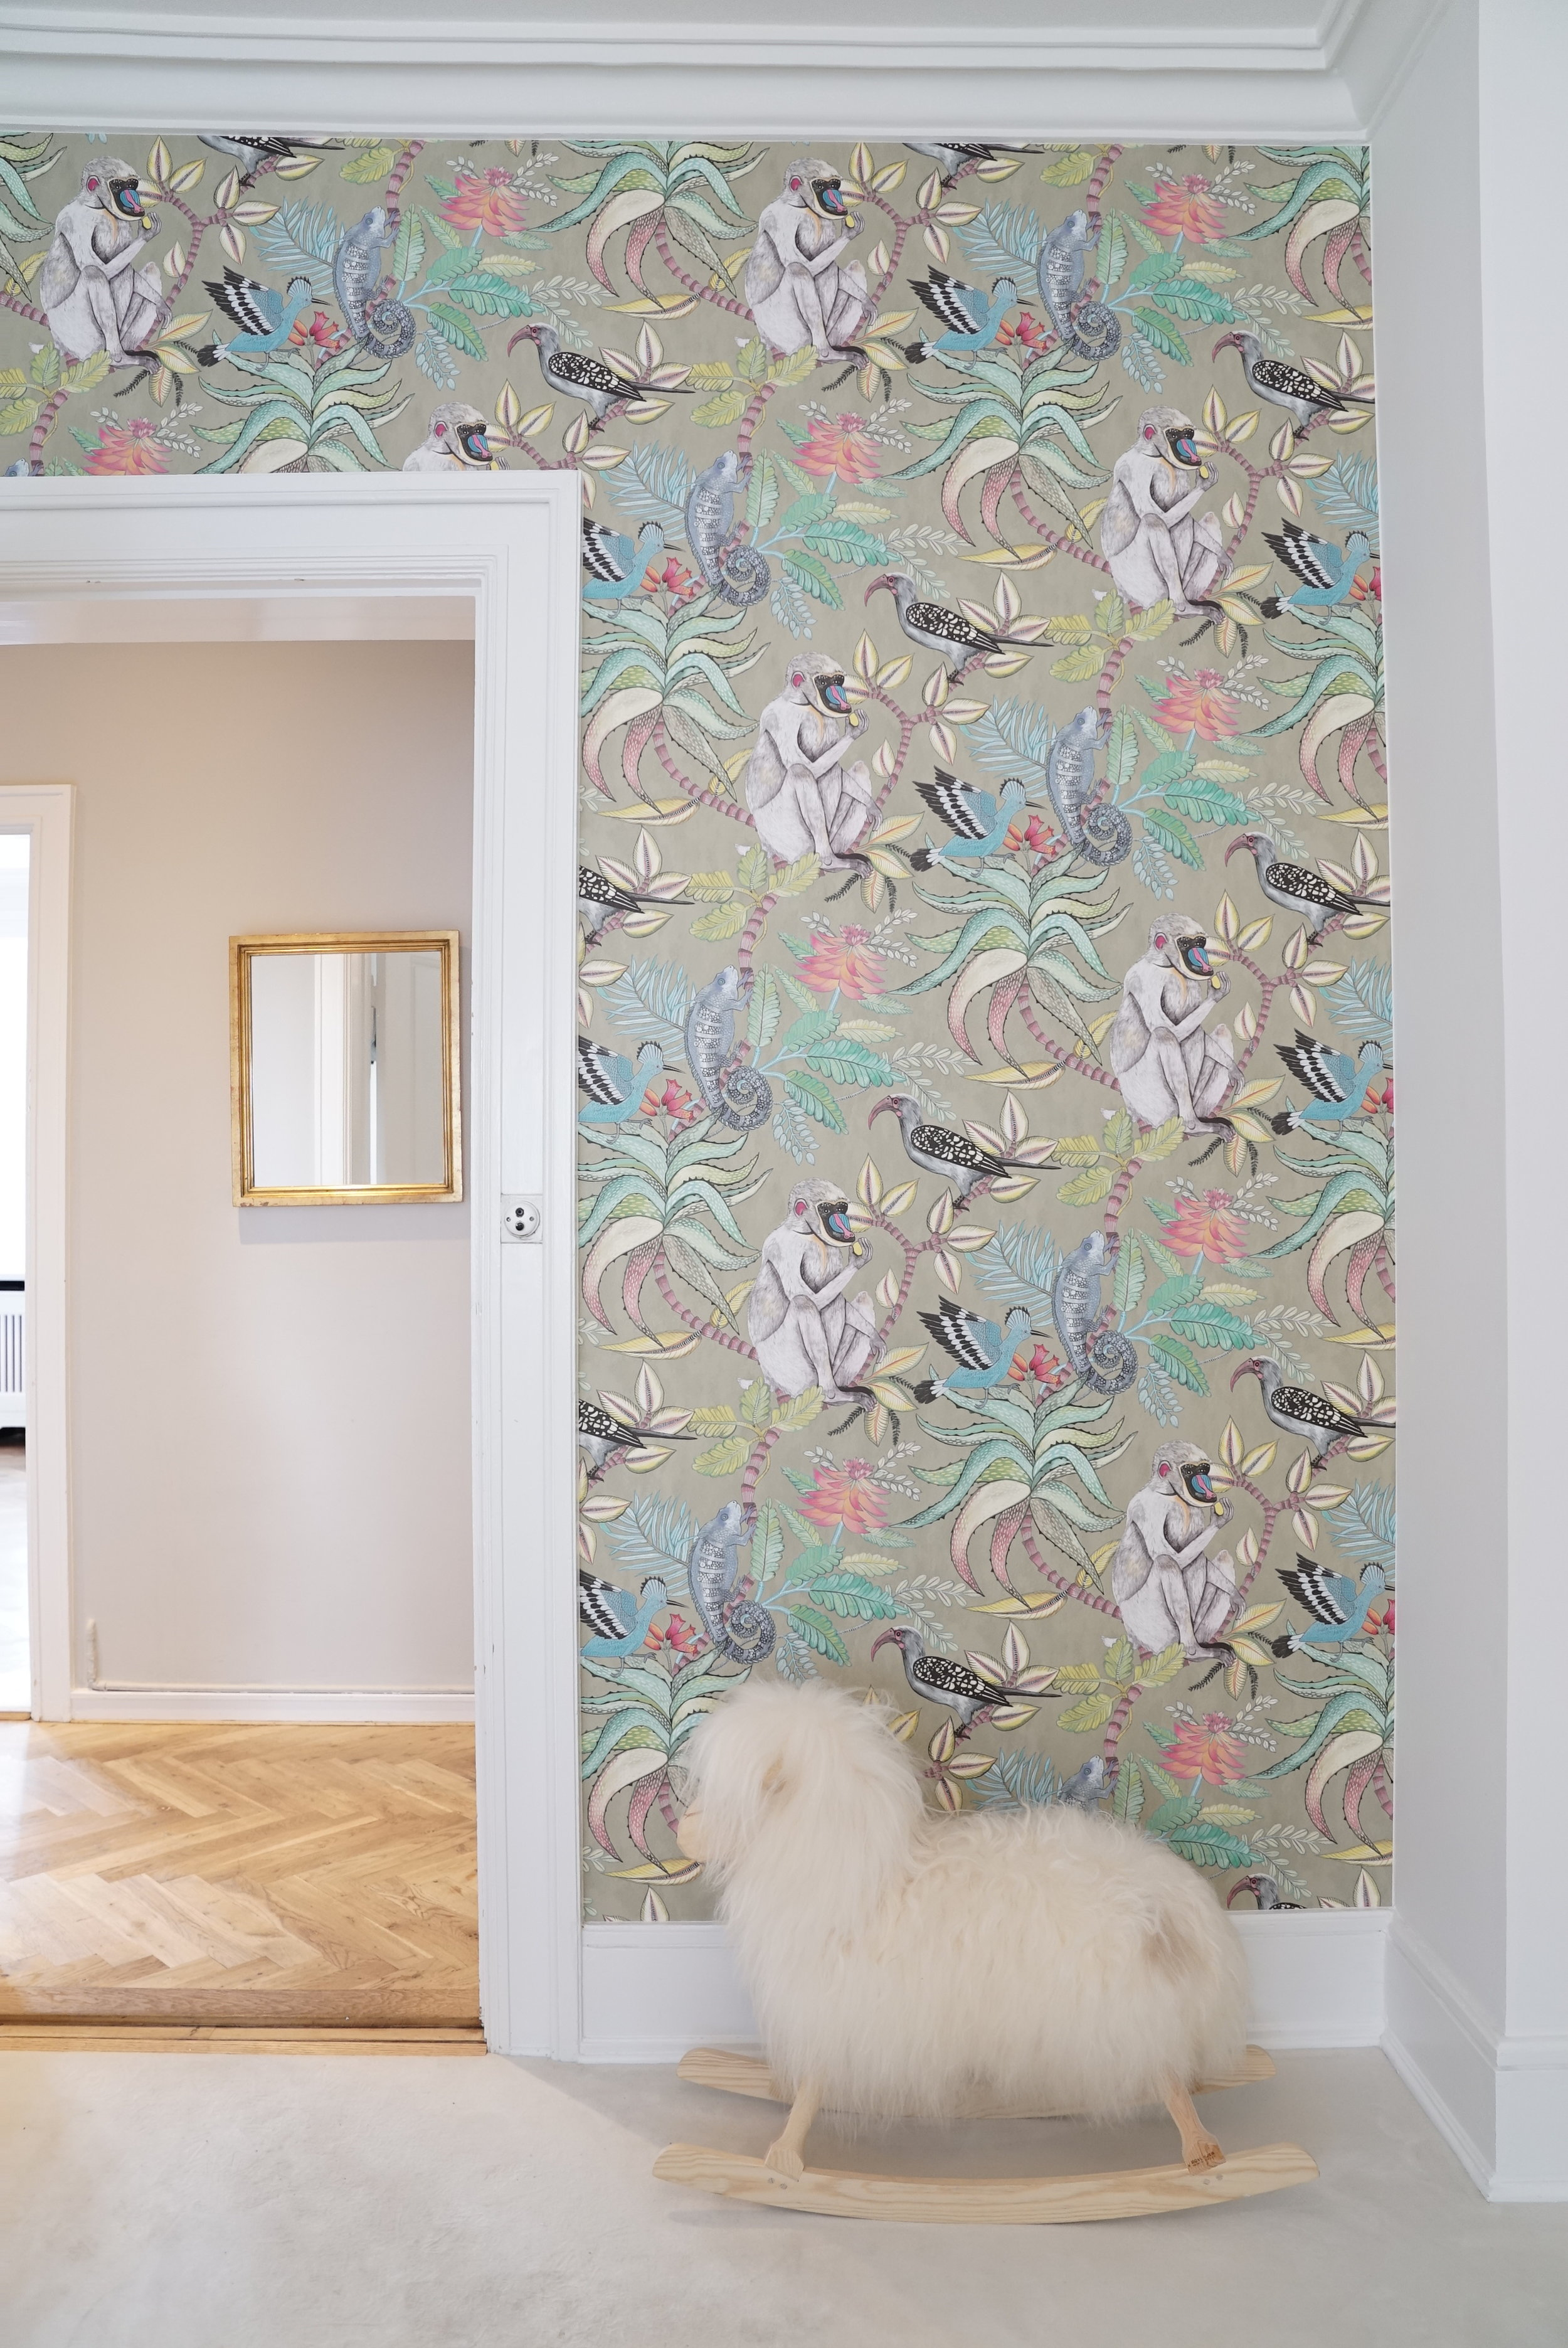 The wallpaper on the wall adding colour and warmth